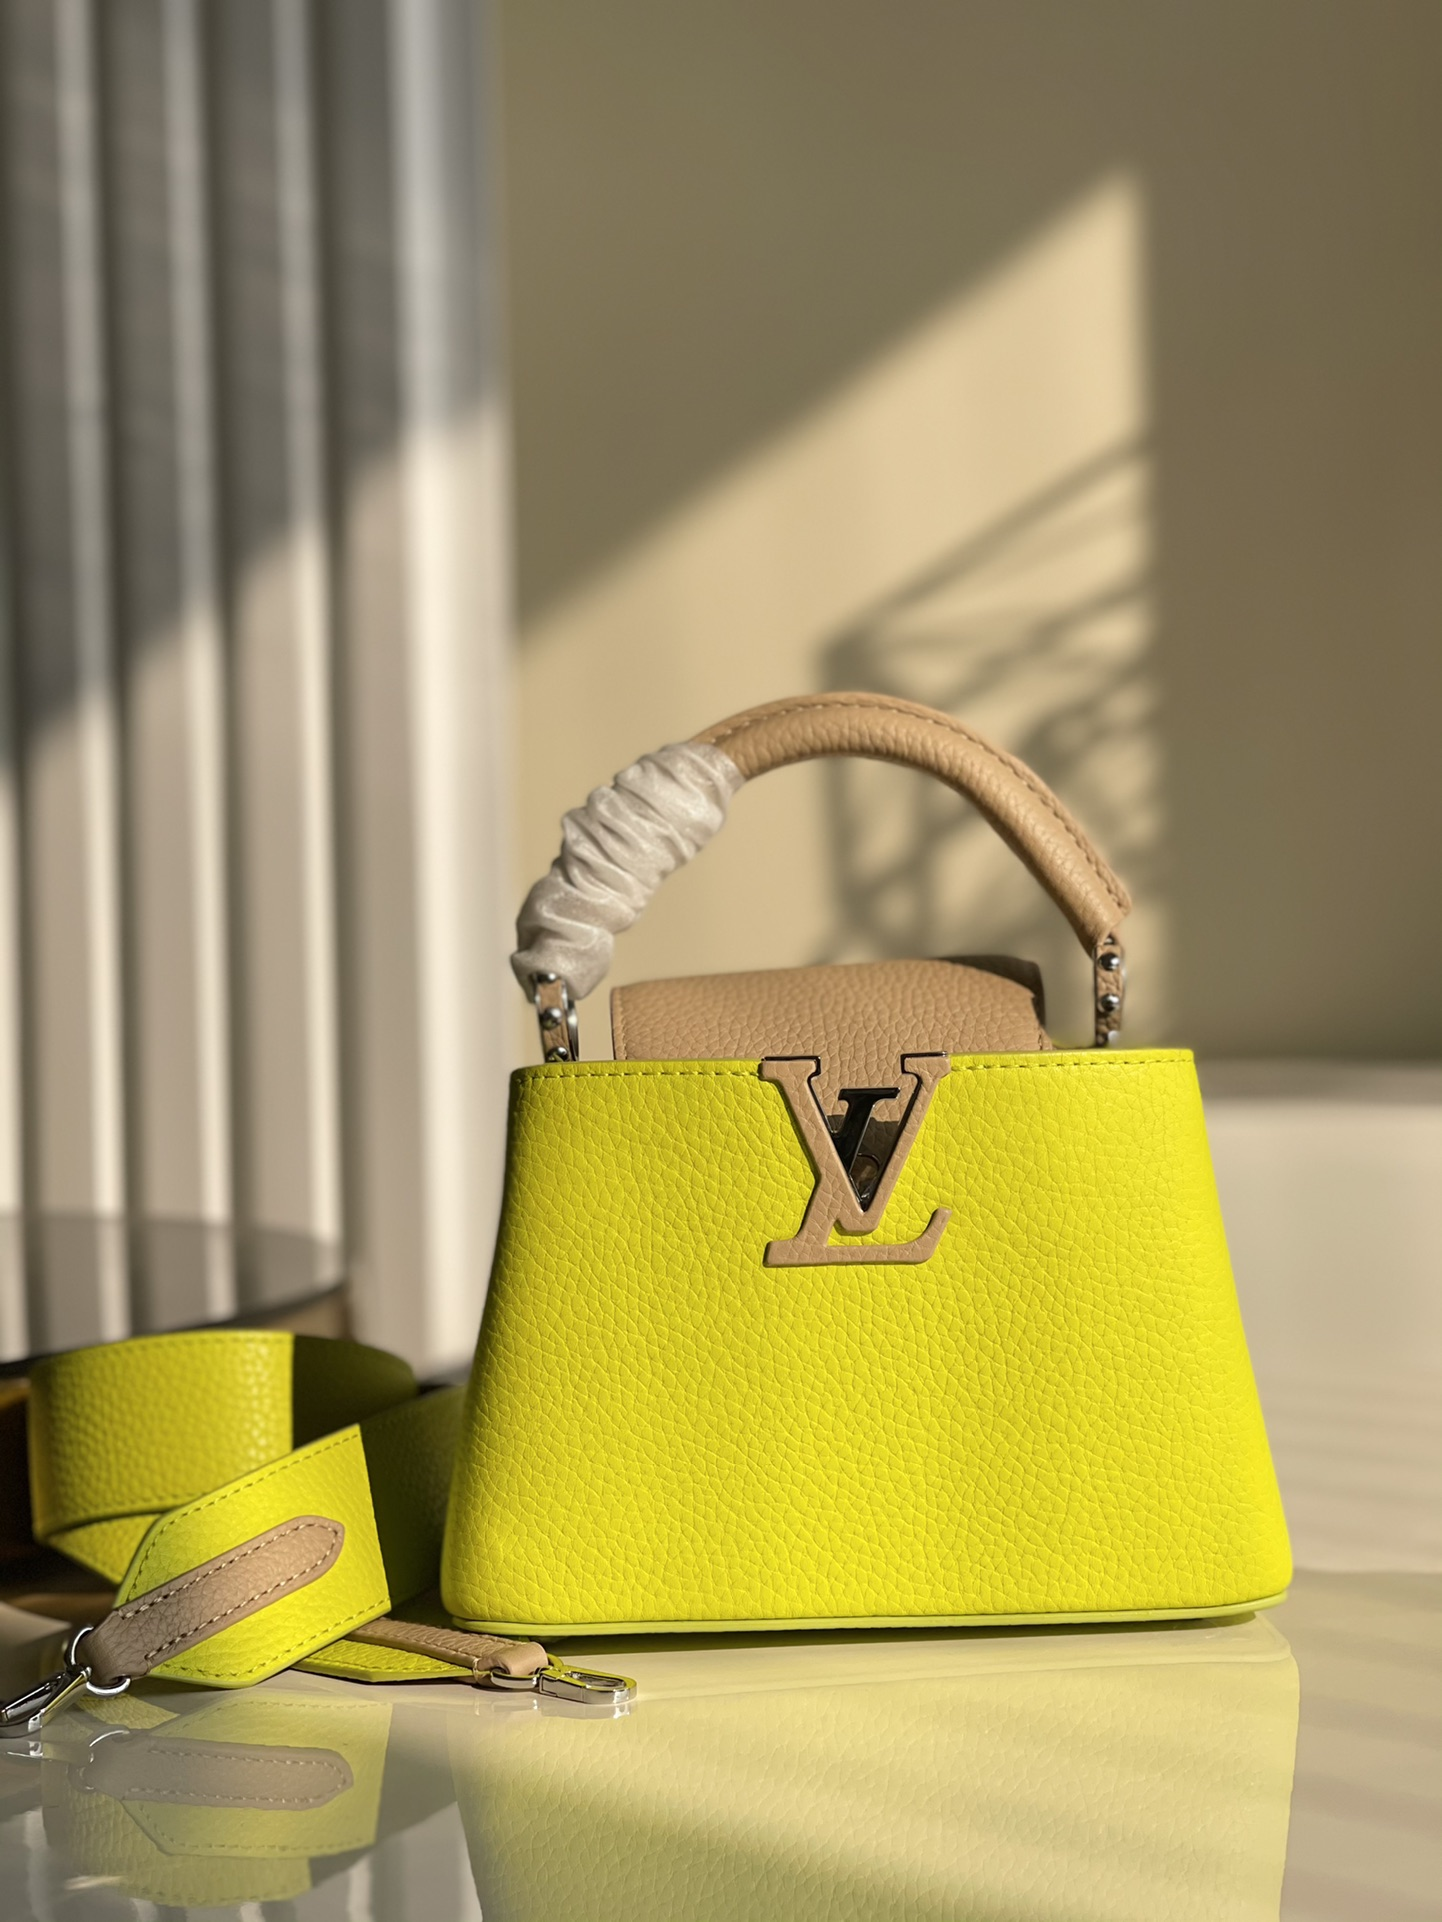 Replica Louis Vuitton M57521 Capucines Mini Handbag Fluorescent Yellow Coquille Beige Taurillon Leather